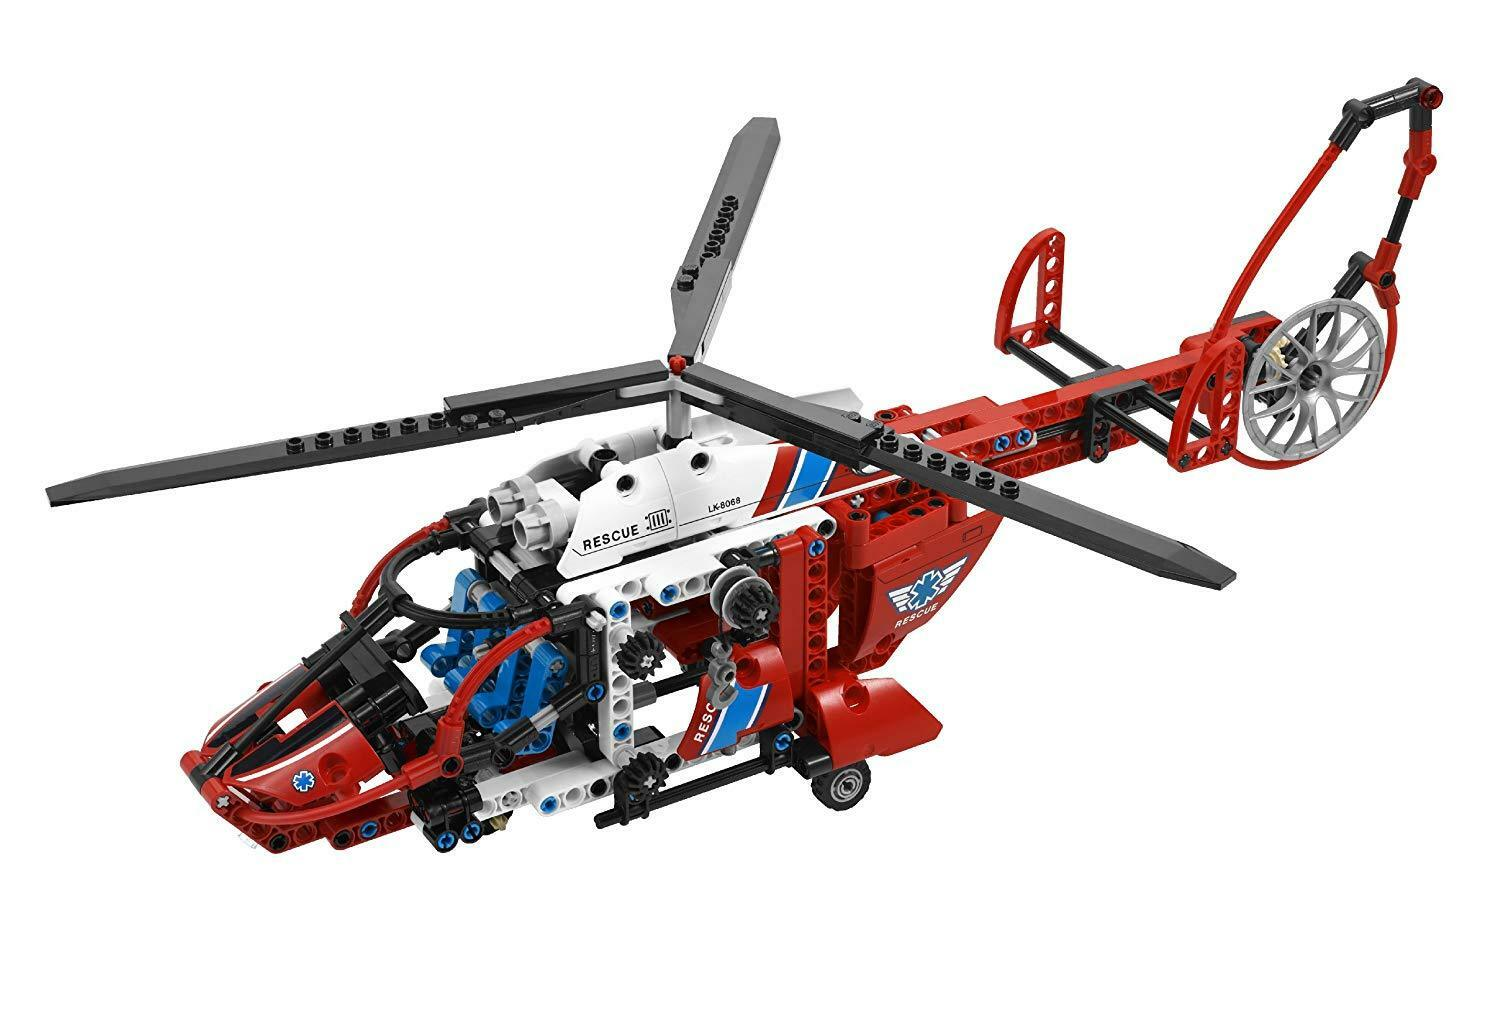 Lego Technic Rescue Helicopter 8068 8068 8068 - retired 57a29a